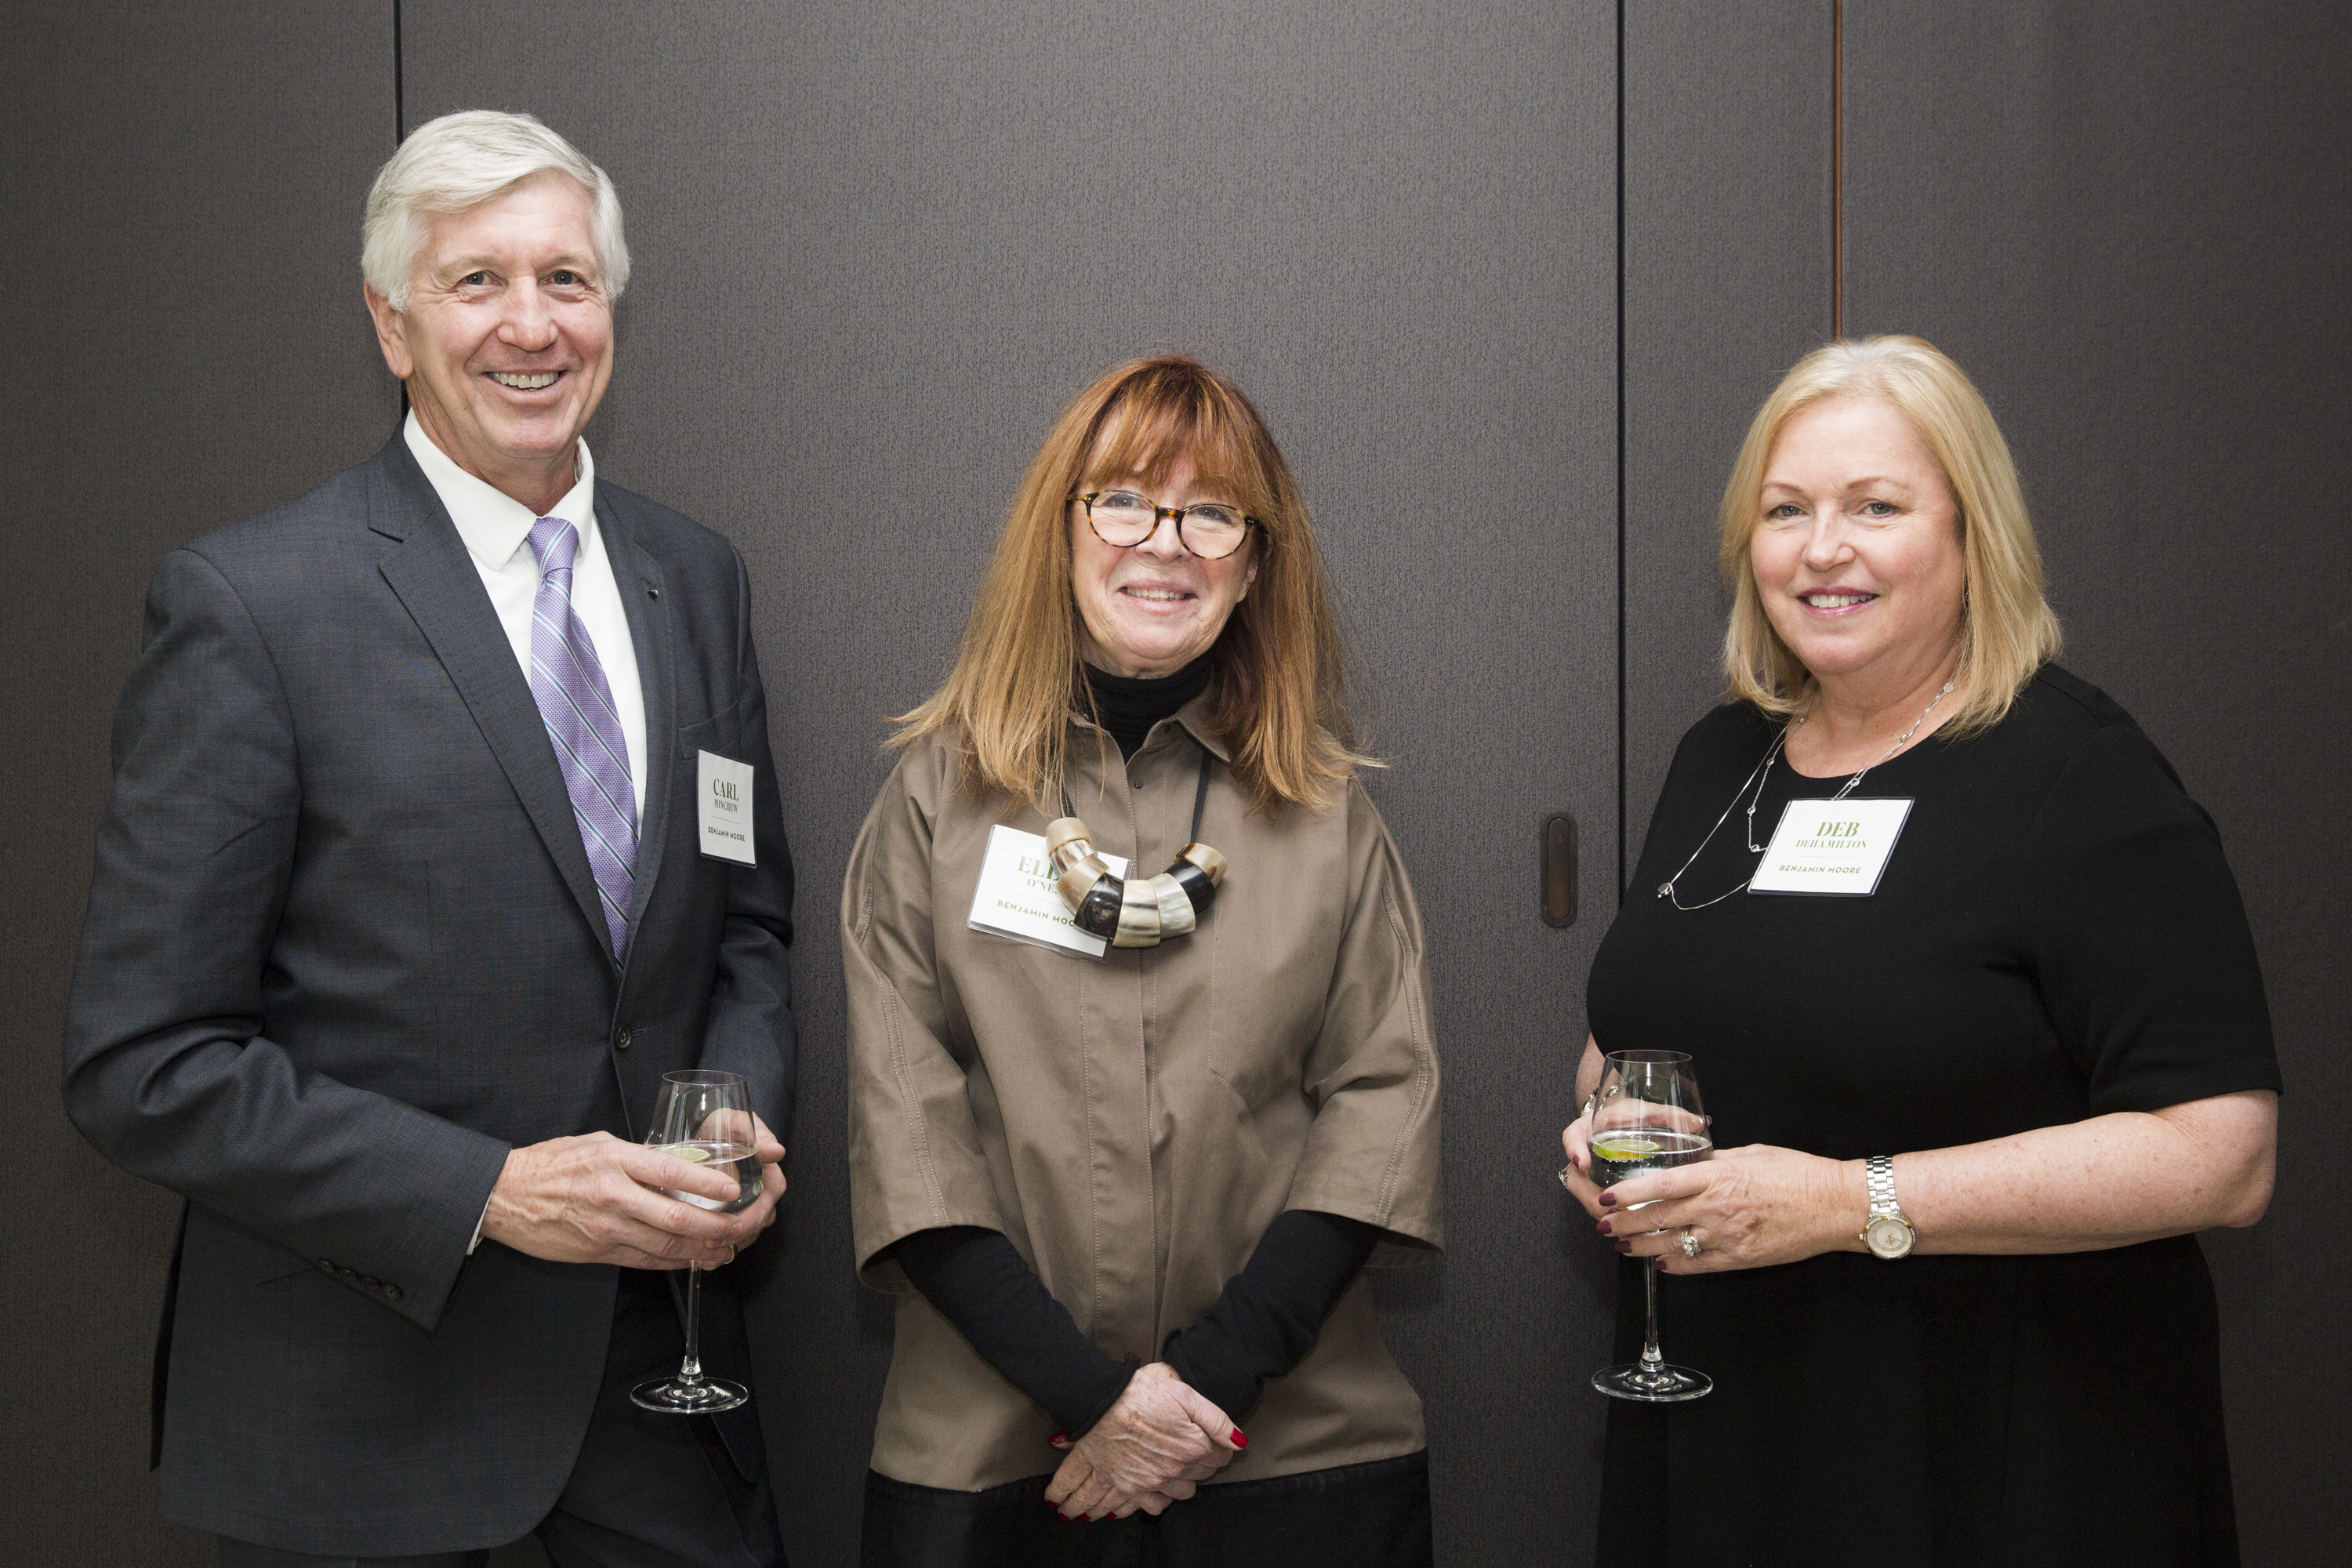 Carl Minchew, Ellen O'Neill and Deb Dehamilton